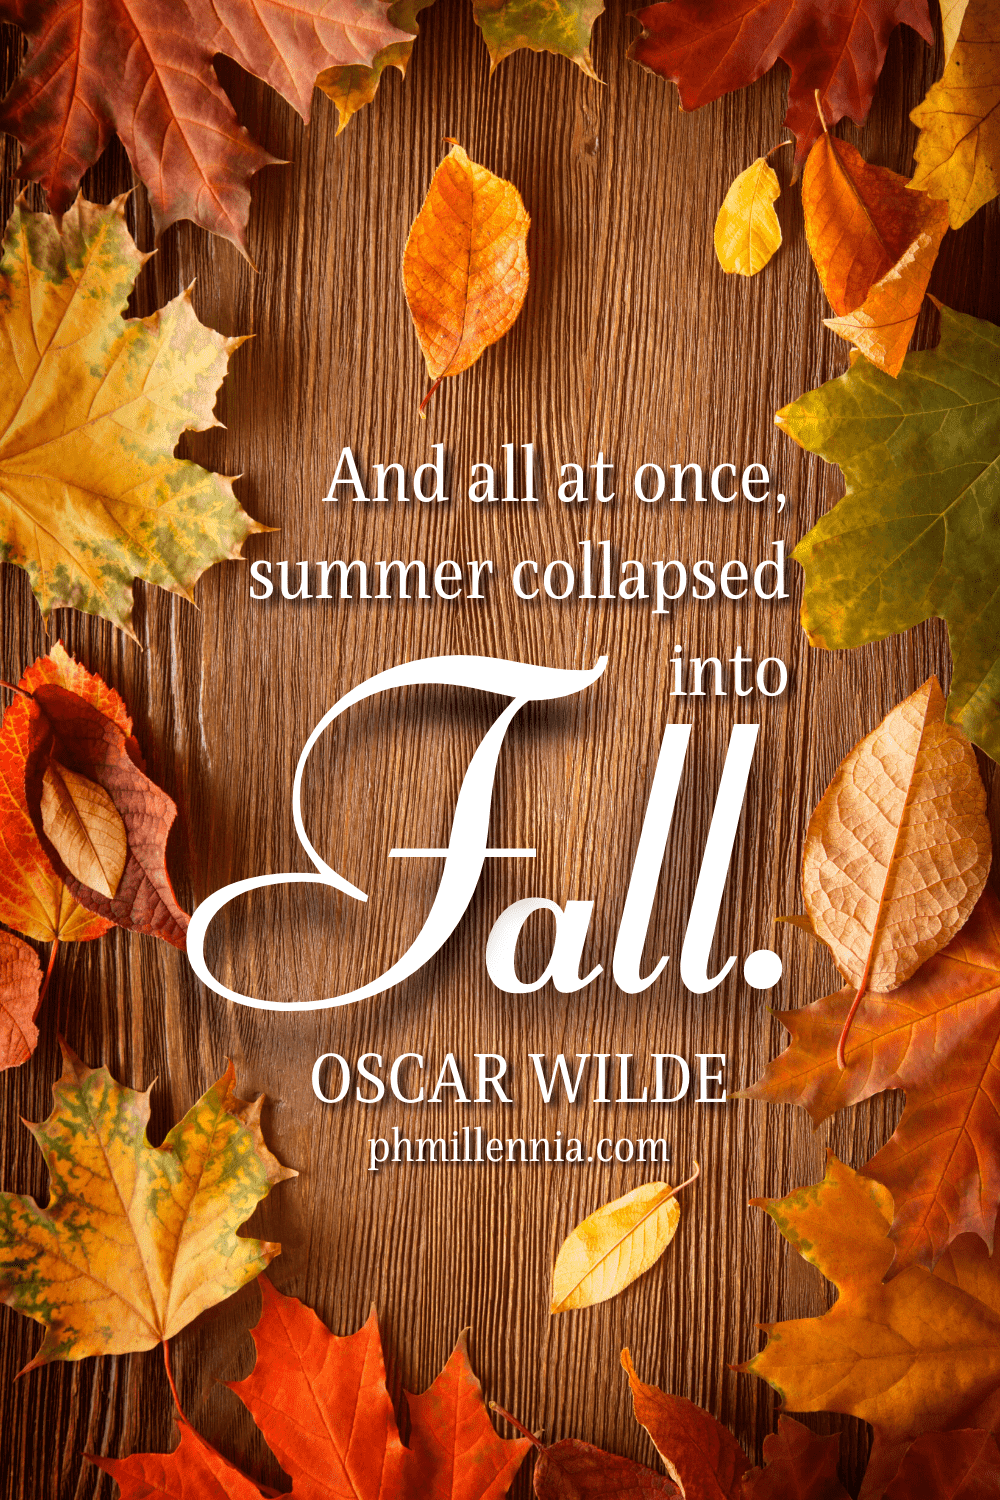 A graphic featuring an autumn quote/fall saying over an image of autumn/fall leaves arranged flat on a wooden board